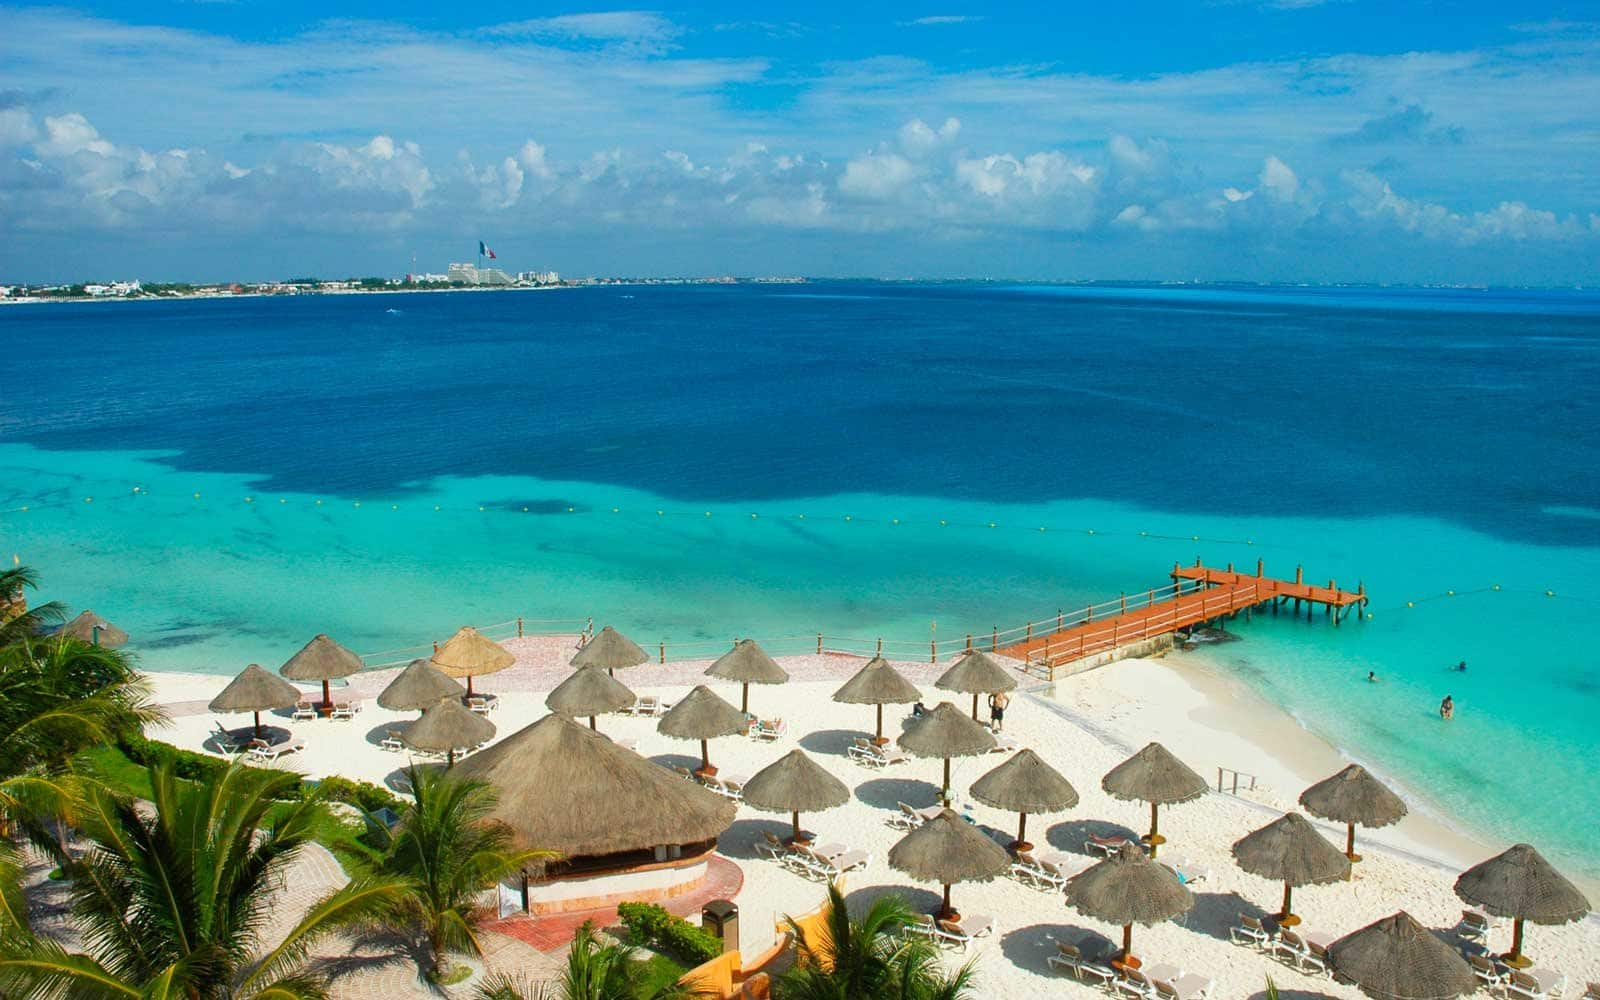 Hartford CT to Cancun Mexico $276 RT Airfares on American Airlines BE (Travel August - November 2020)